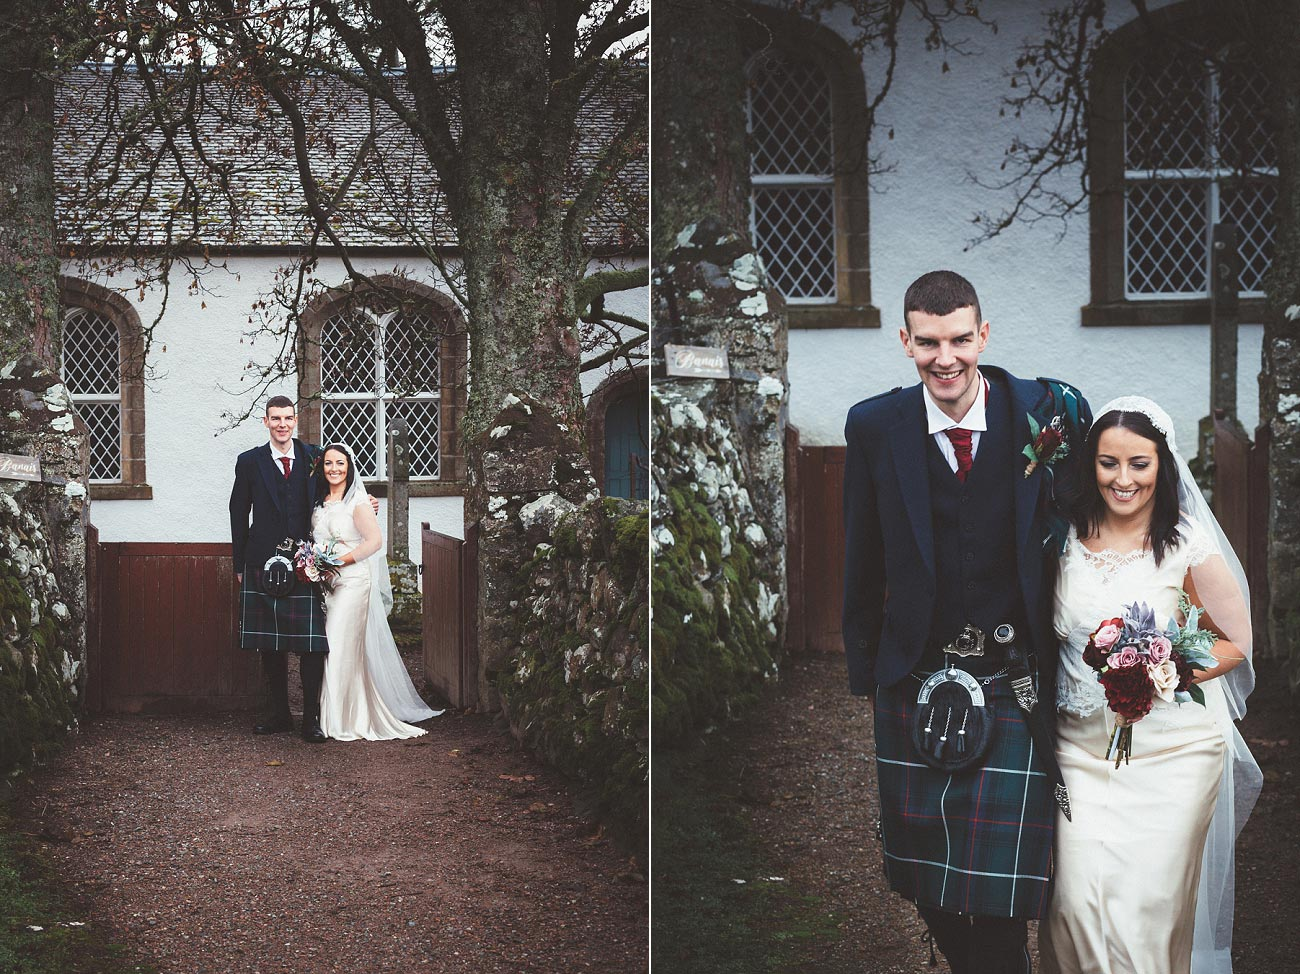 small church wedding Invernessshire scotland scottish highlands Croick 0034